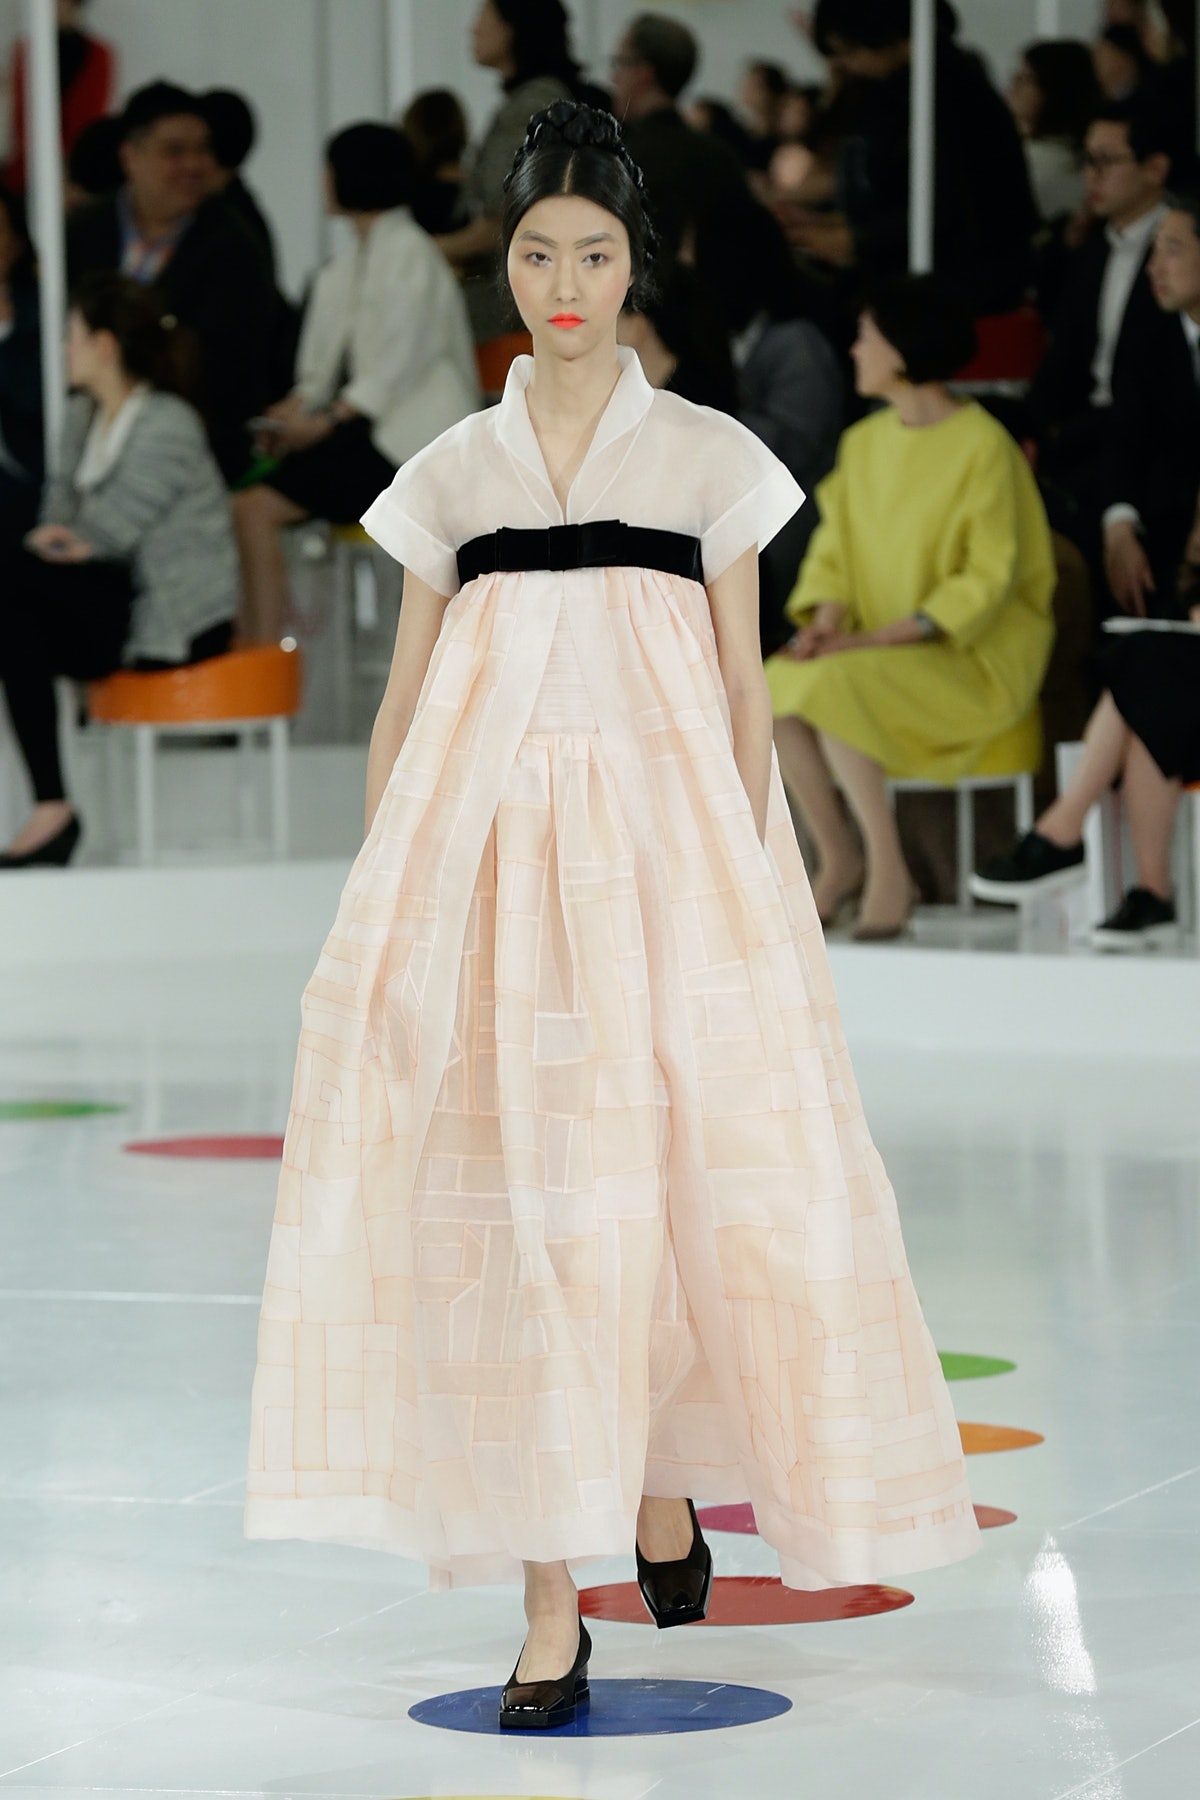 Chanel 2015/16 Cruise Collection - Runway